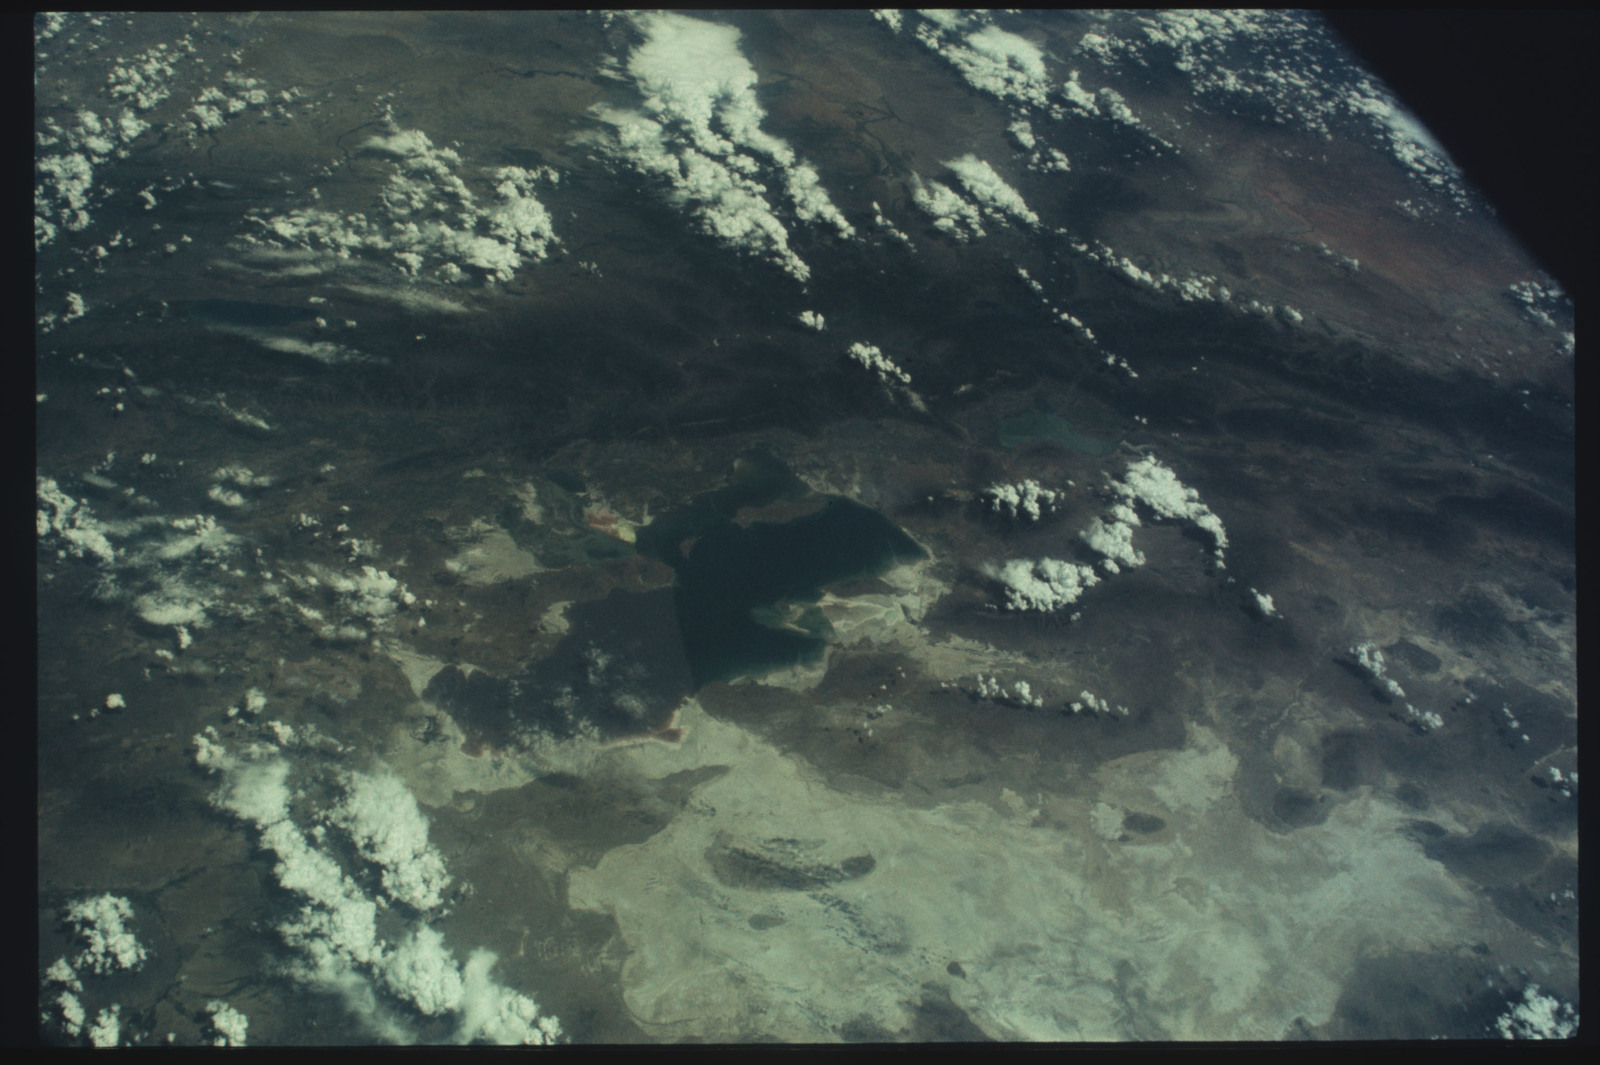 AST-07-405 - Apollo Soyuz Test Project - Apollo Soyuz Test Project, Earth view over Utah, Great Salt Lake and Desert, Wasatch Mountains